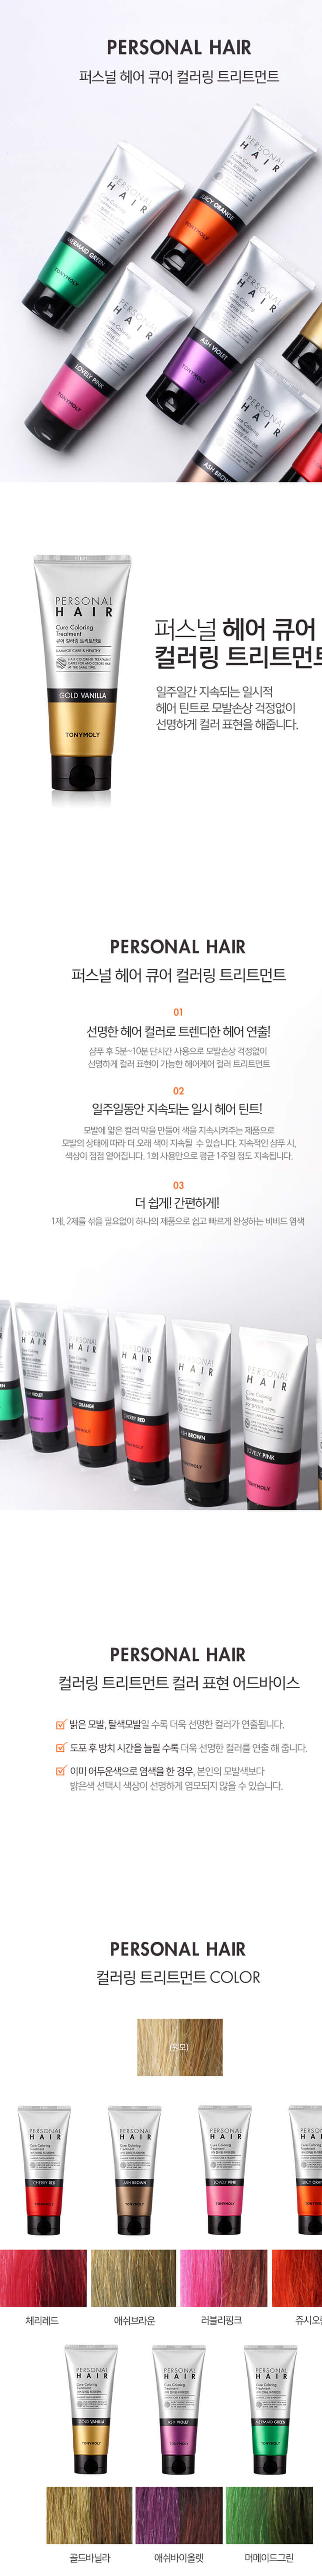 TONY MOLY Personal Hair Care Treatment [Juicy Orange]